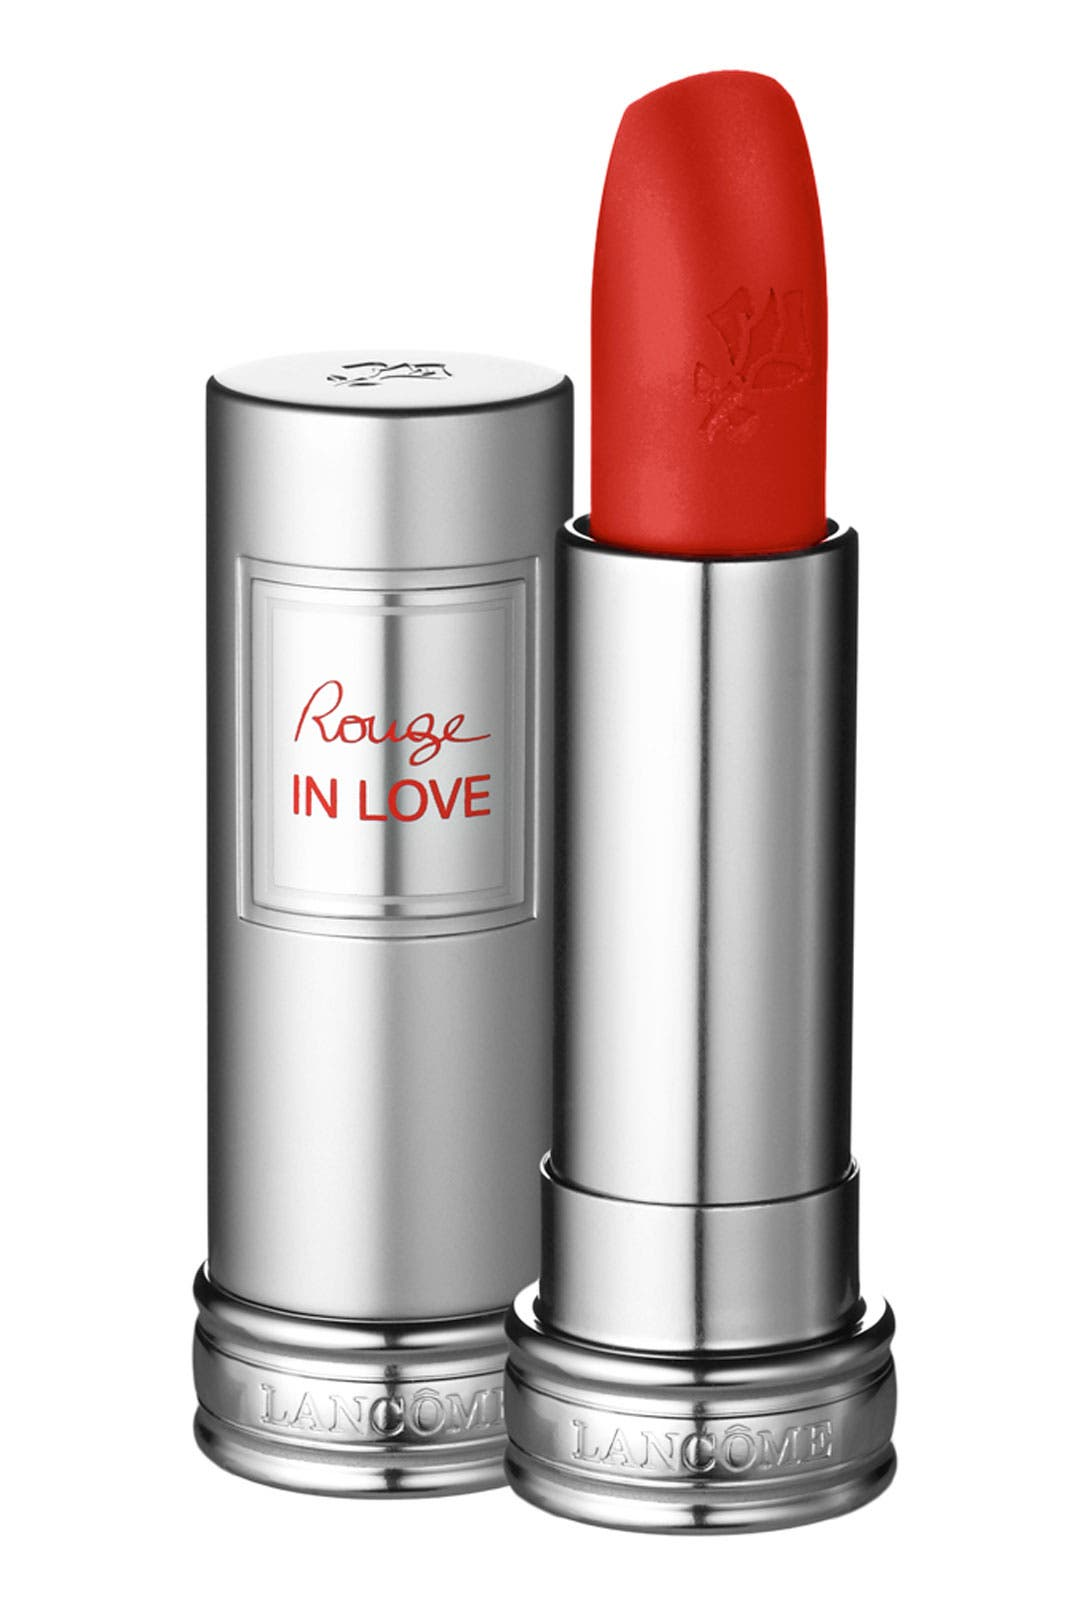 Rouge in Love Rouge St. Honore by LANCÔME